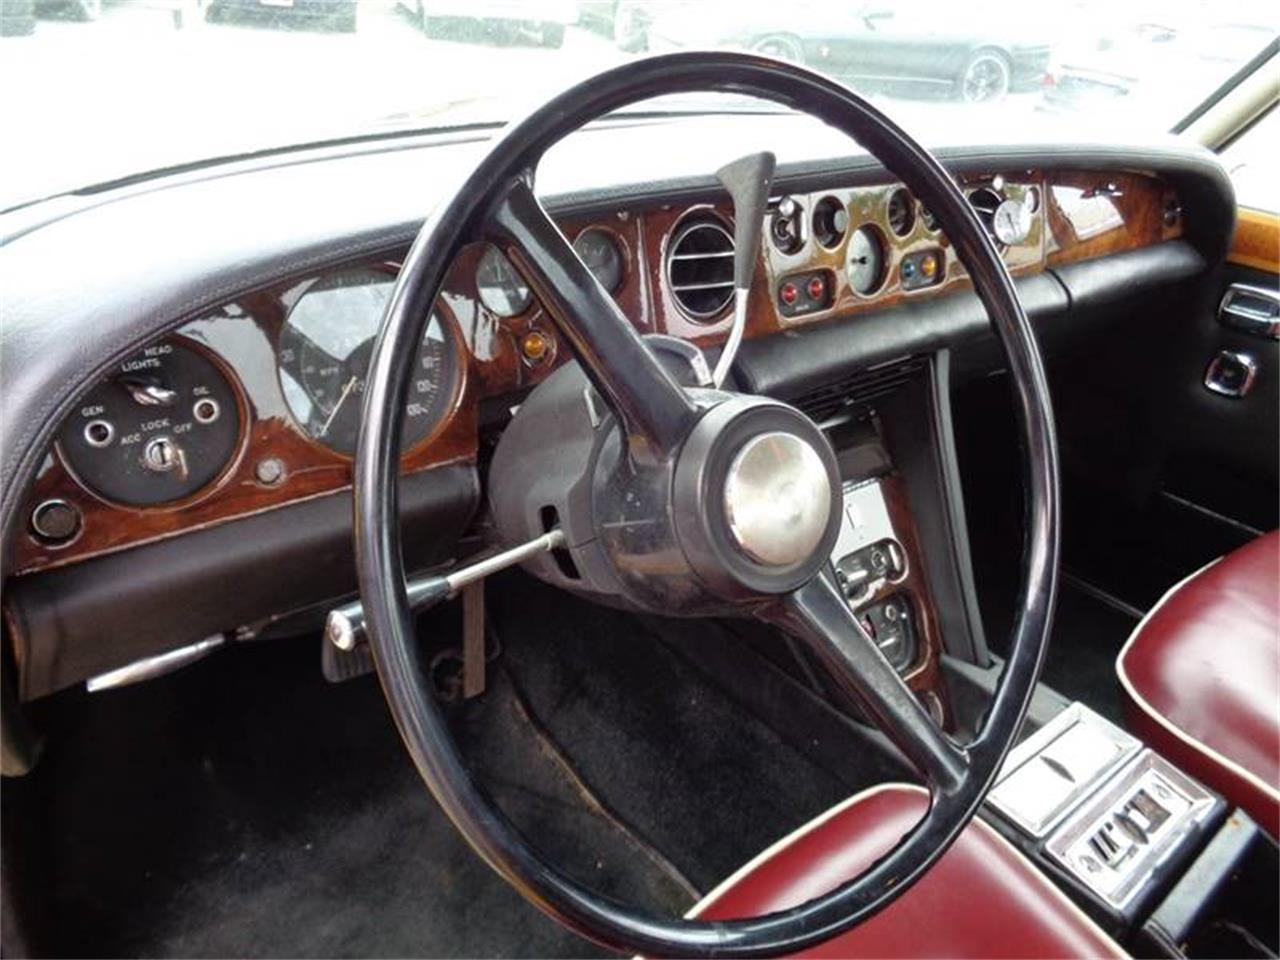 1973 Rolls-Royce Silver Shadow for sale in Fort Lauderdale, FL – photo 13